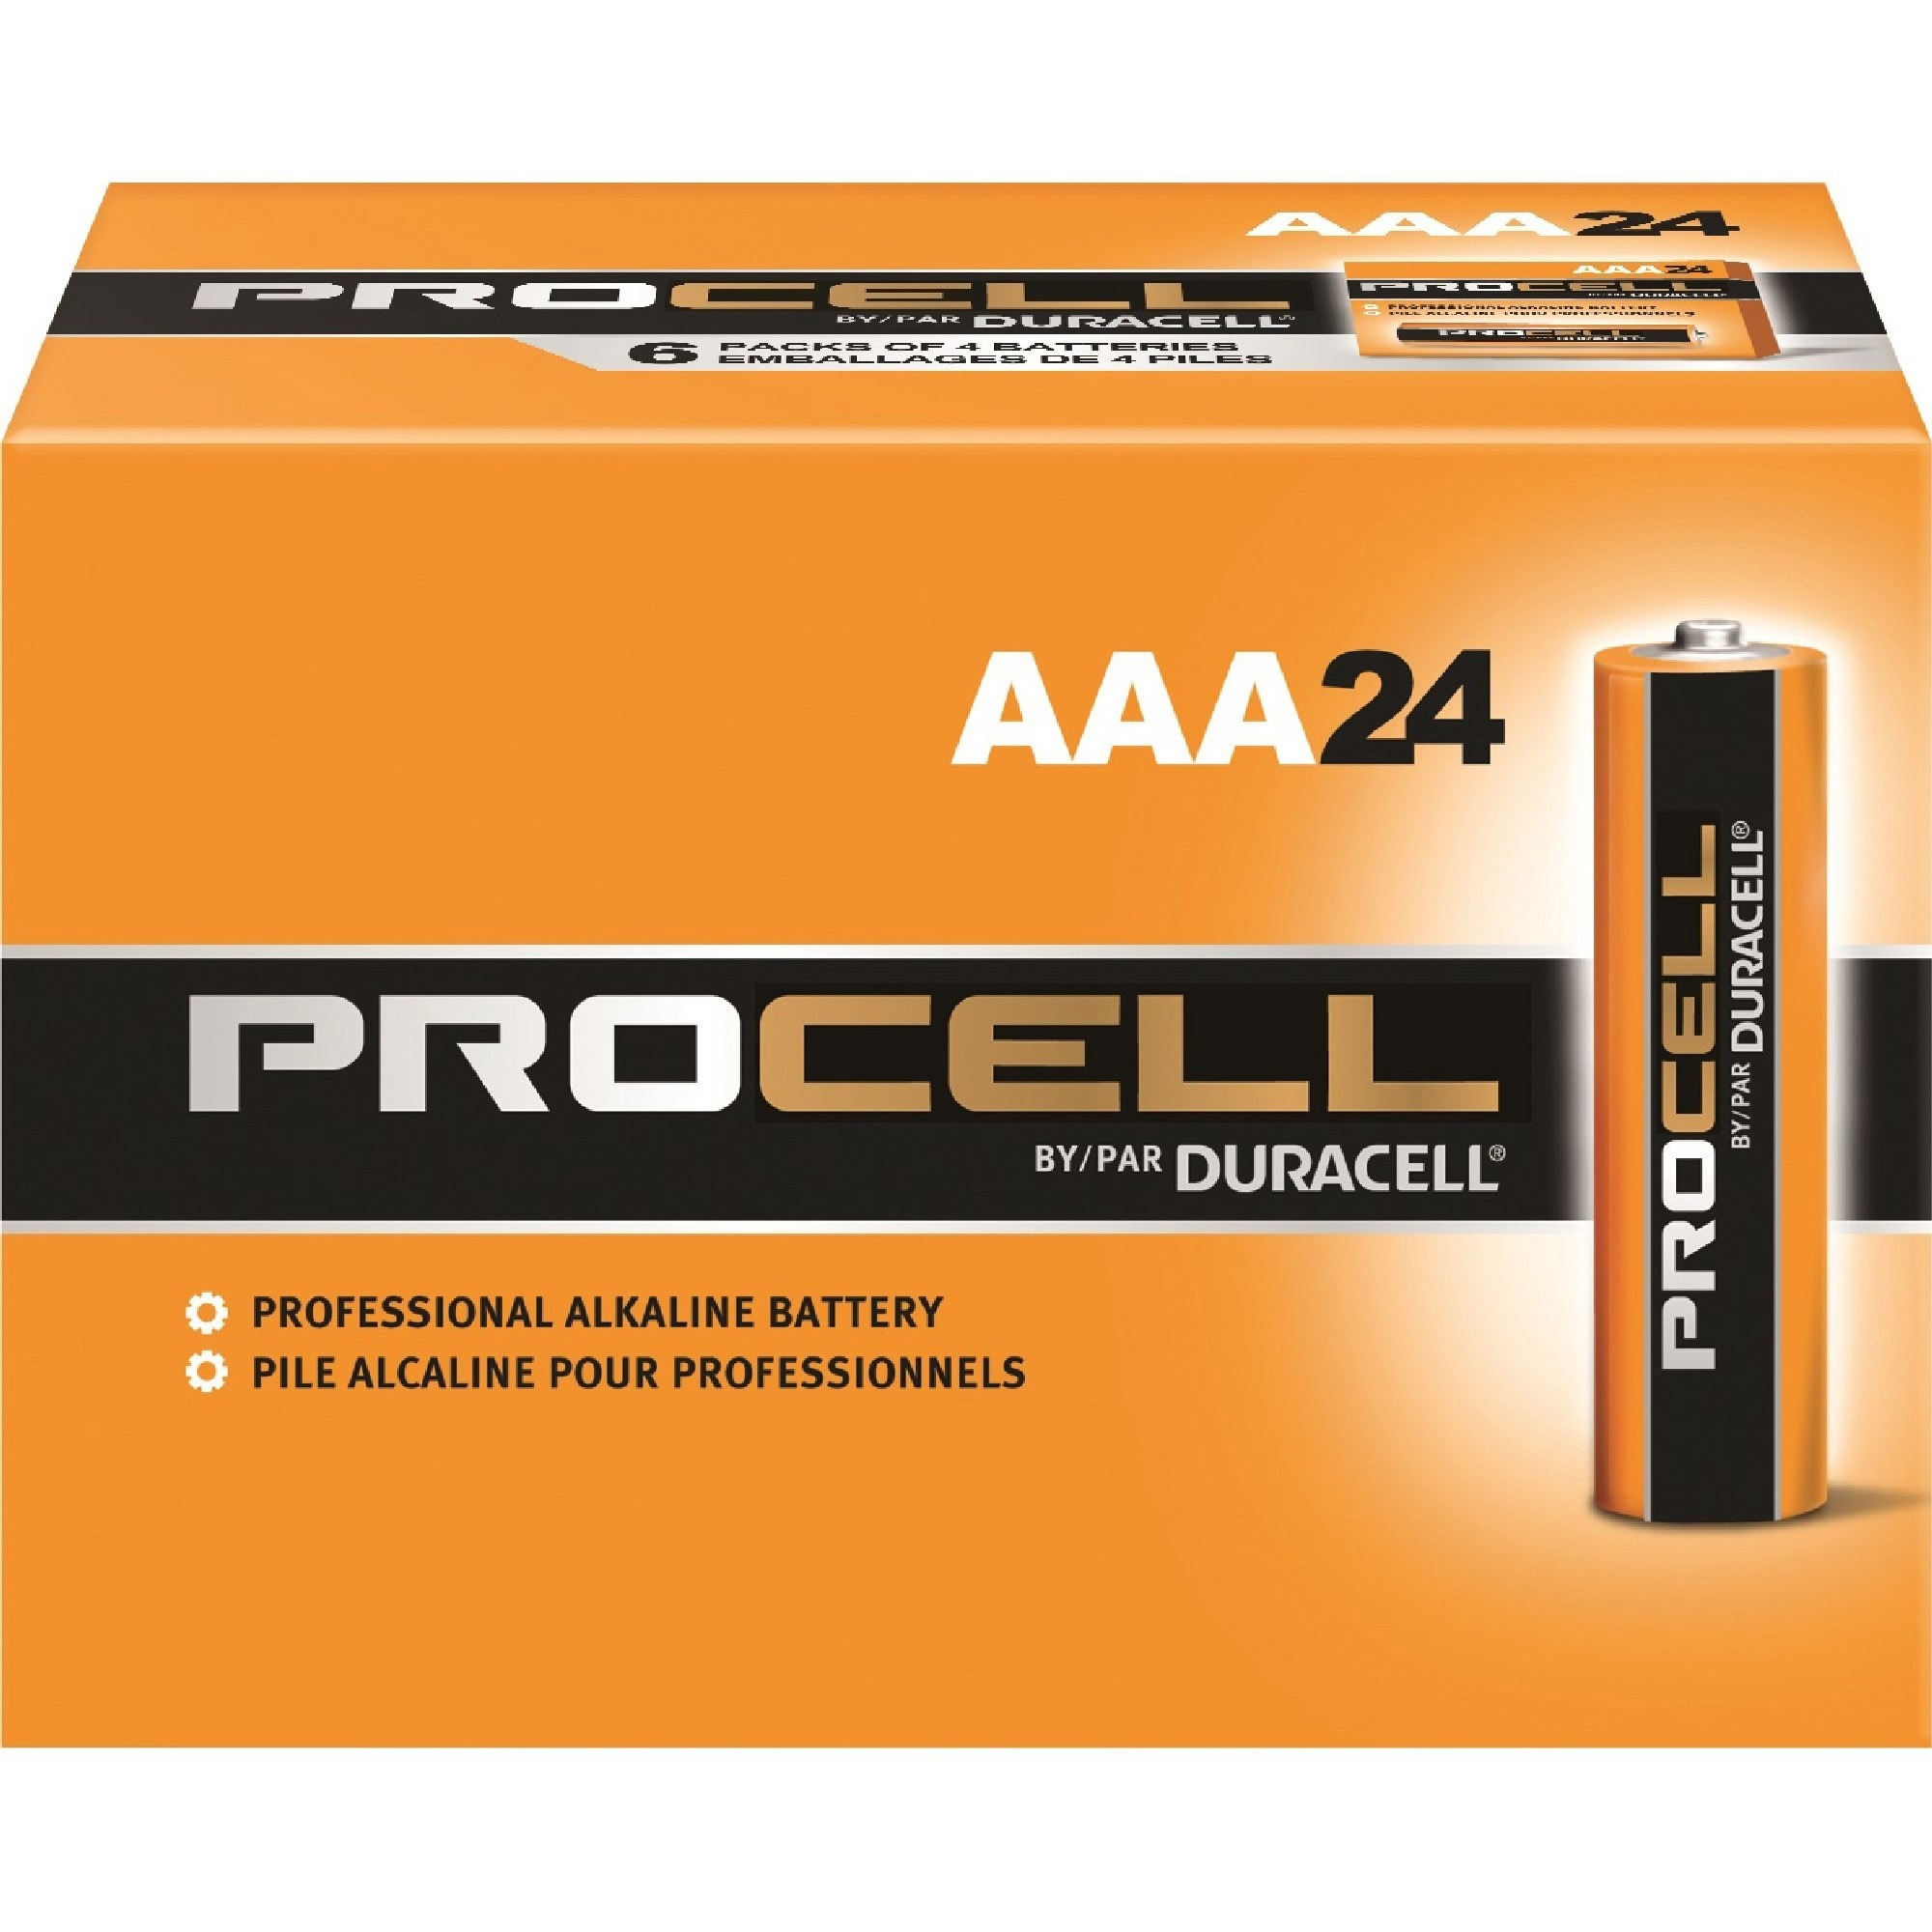 Duracell Procell Alkaline AAA Batteries, 24 Count